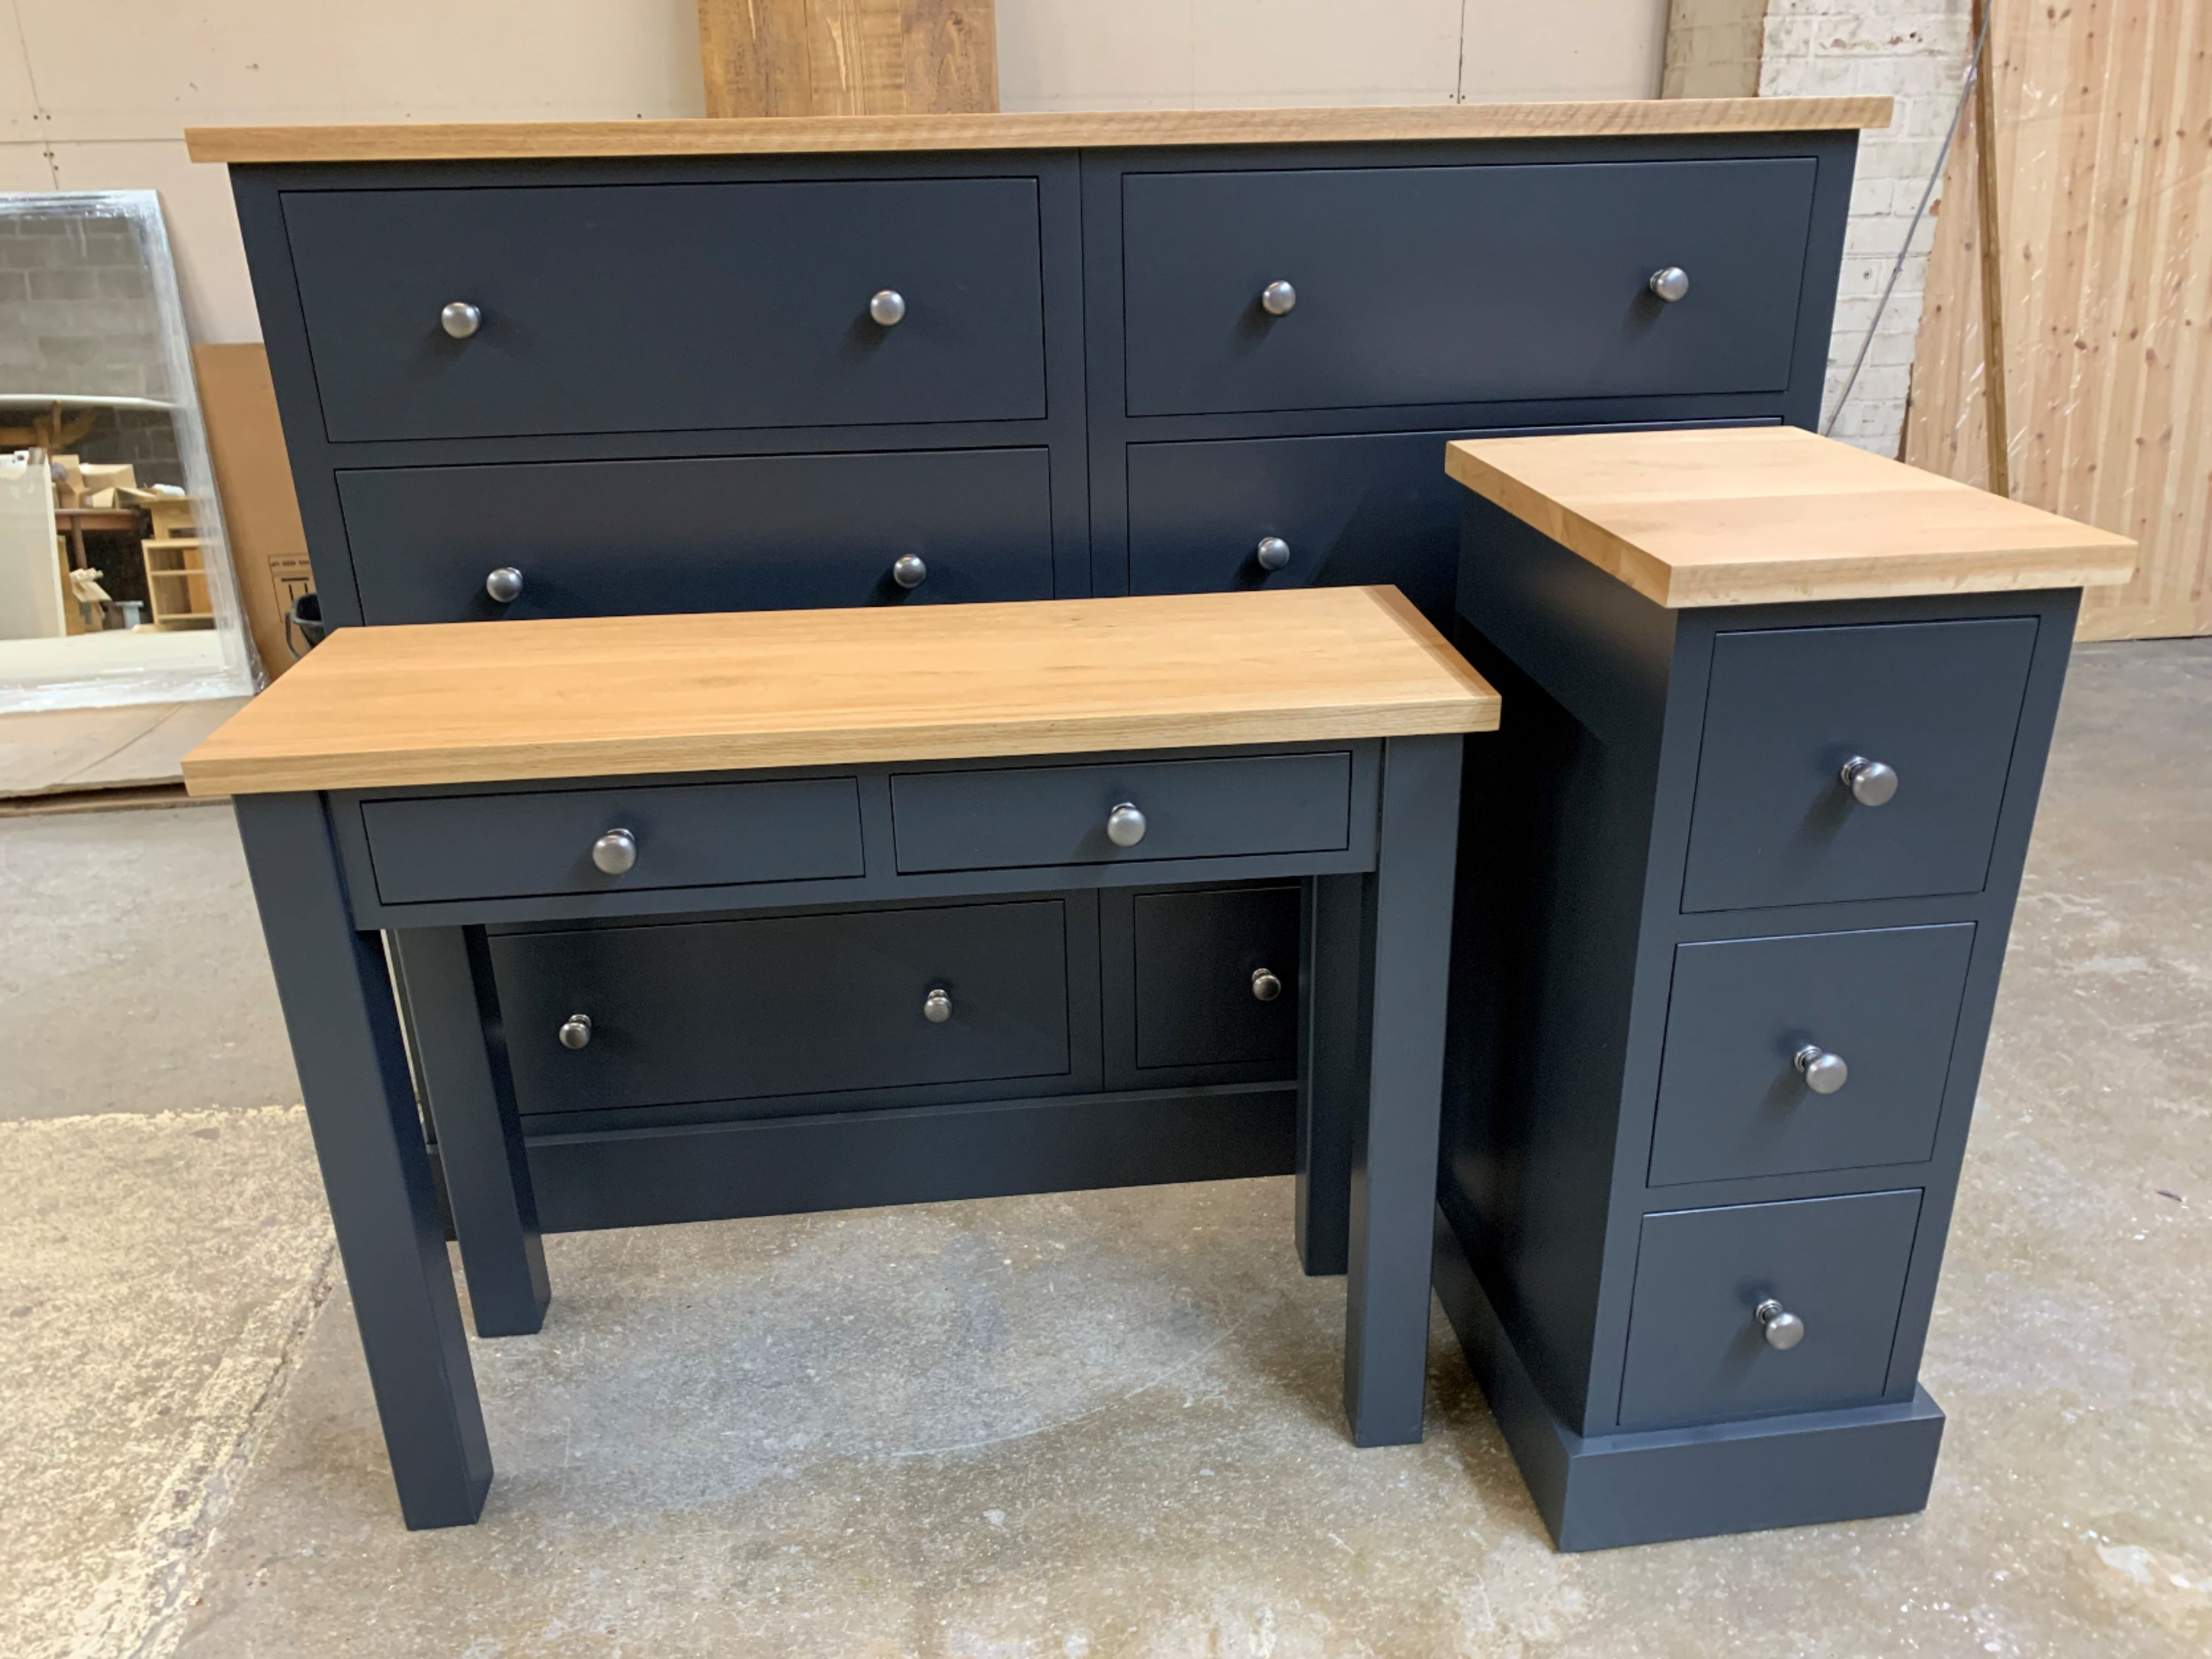 Bespoke And Made To Order Bedroom Furniture Painted In Any Colour With Solid Oak Tops Get In Touch For A In 2020 Bedroom Furniture Furniture Painted Bedroom Furniture